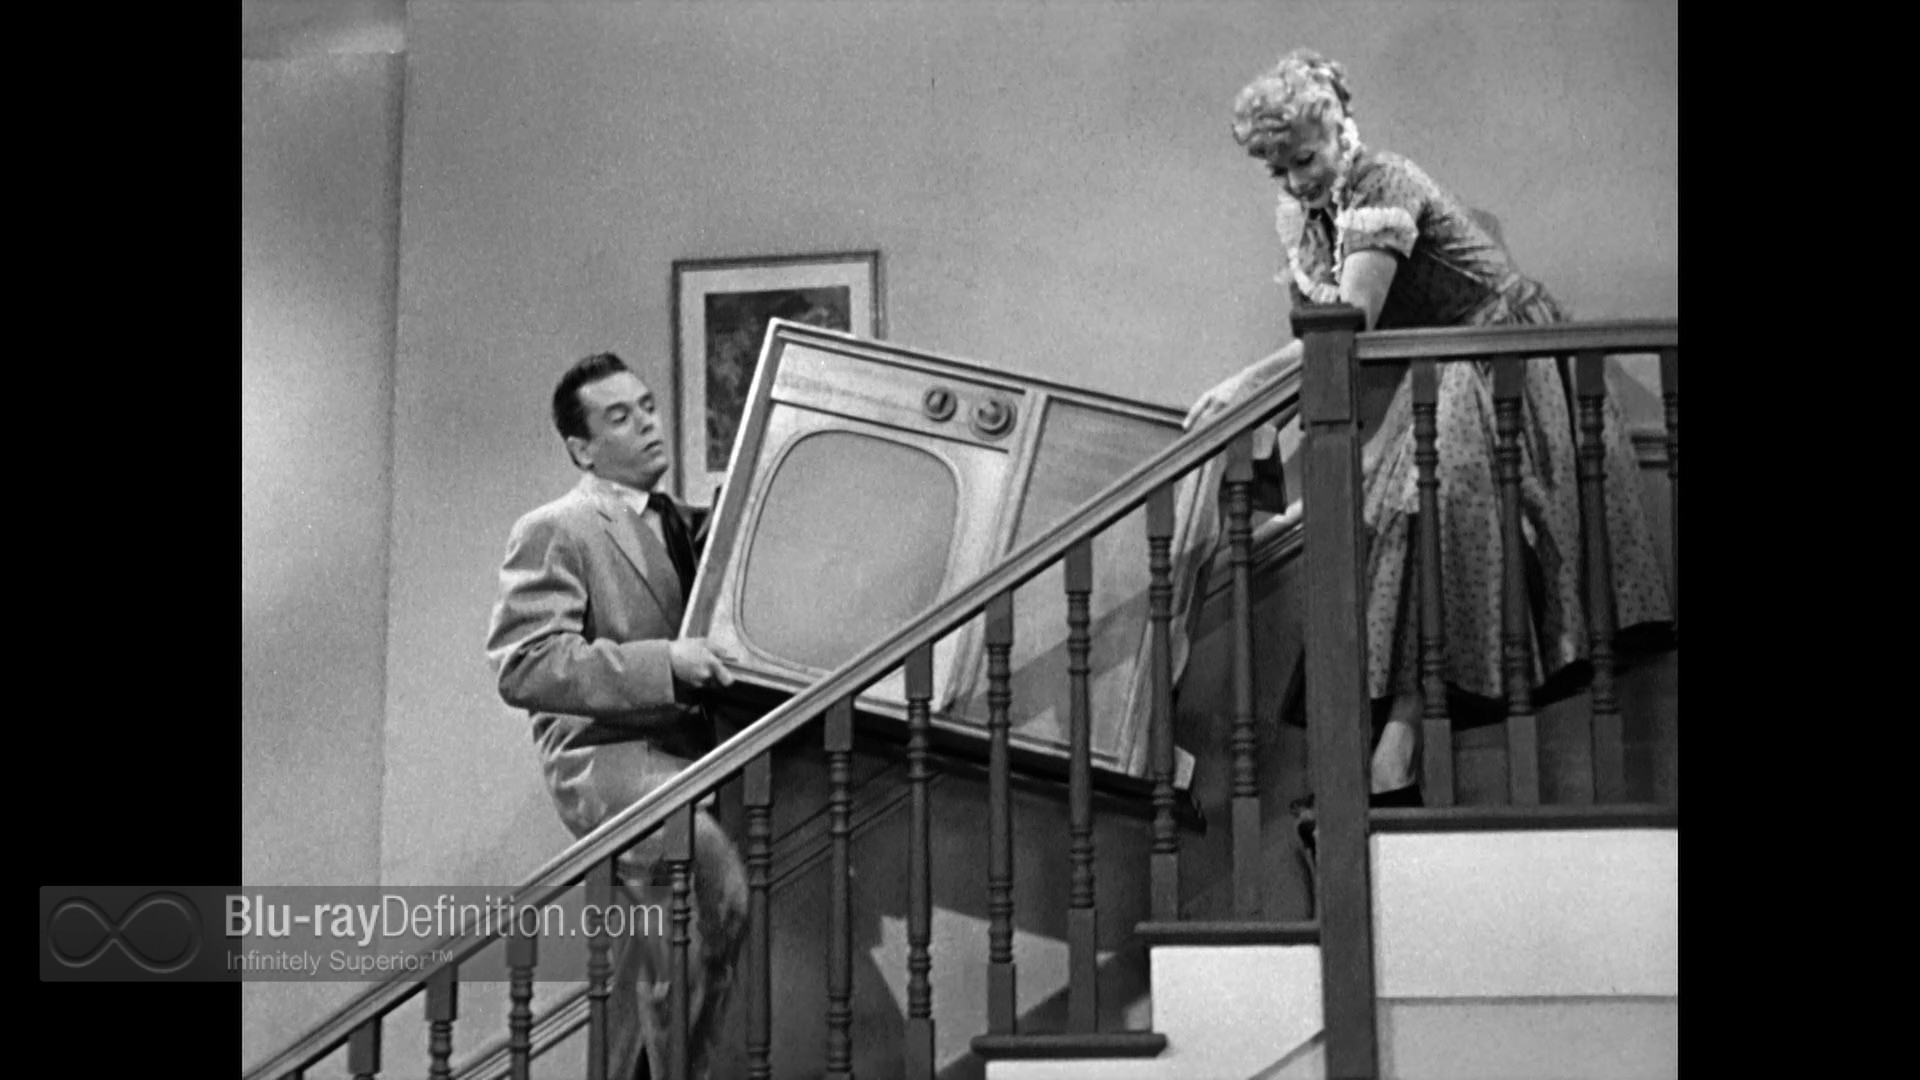 Iphone Wallpaper I Love Lucy : I Love Lucy Wallpaper (57+ images)